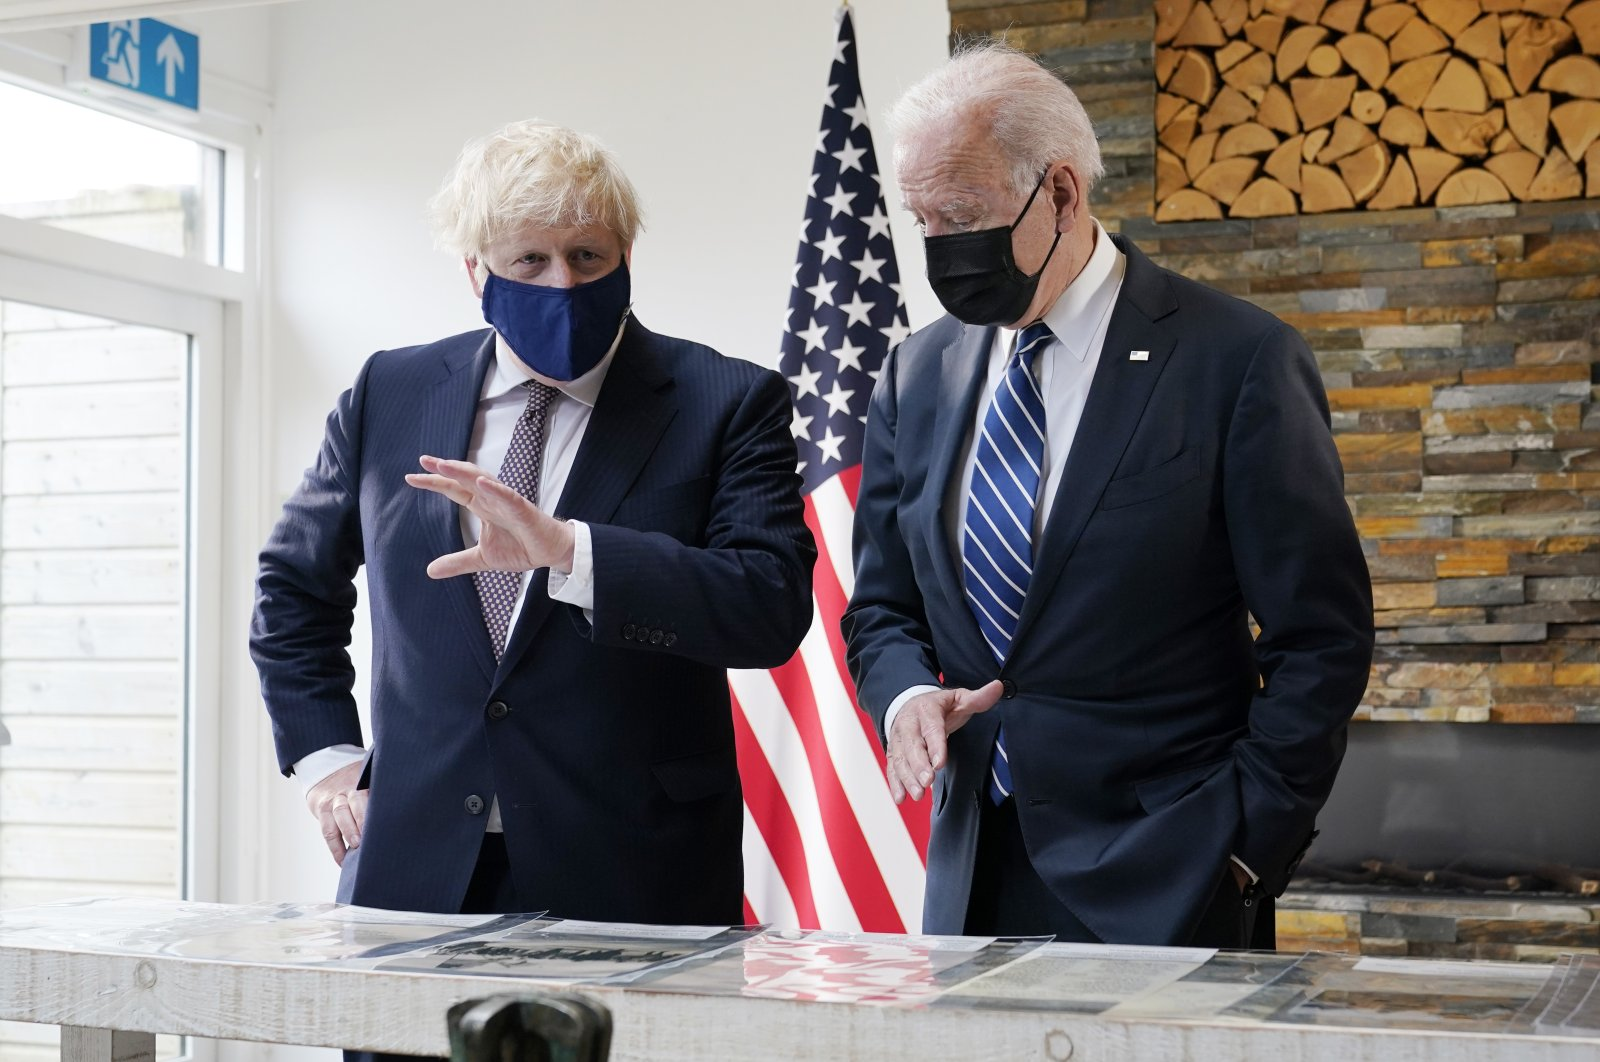 U.S. President Joe Biden and British Prime Minister Boris Johnson look at copies of the Atlantic Charter, during a bilateral meeting ahead of the G-7 summit, in Carbis Bay, England, June 10, 2021. (AP Photo)